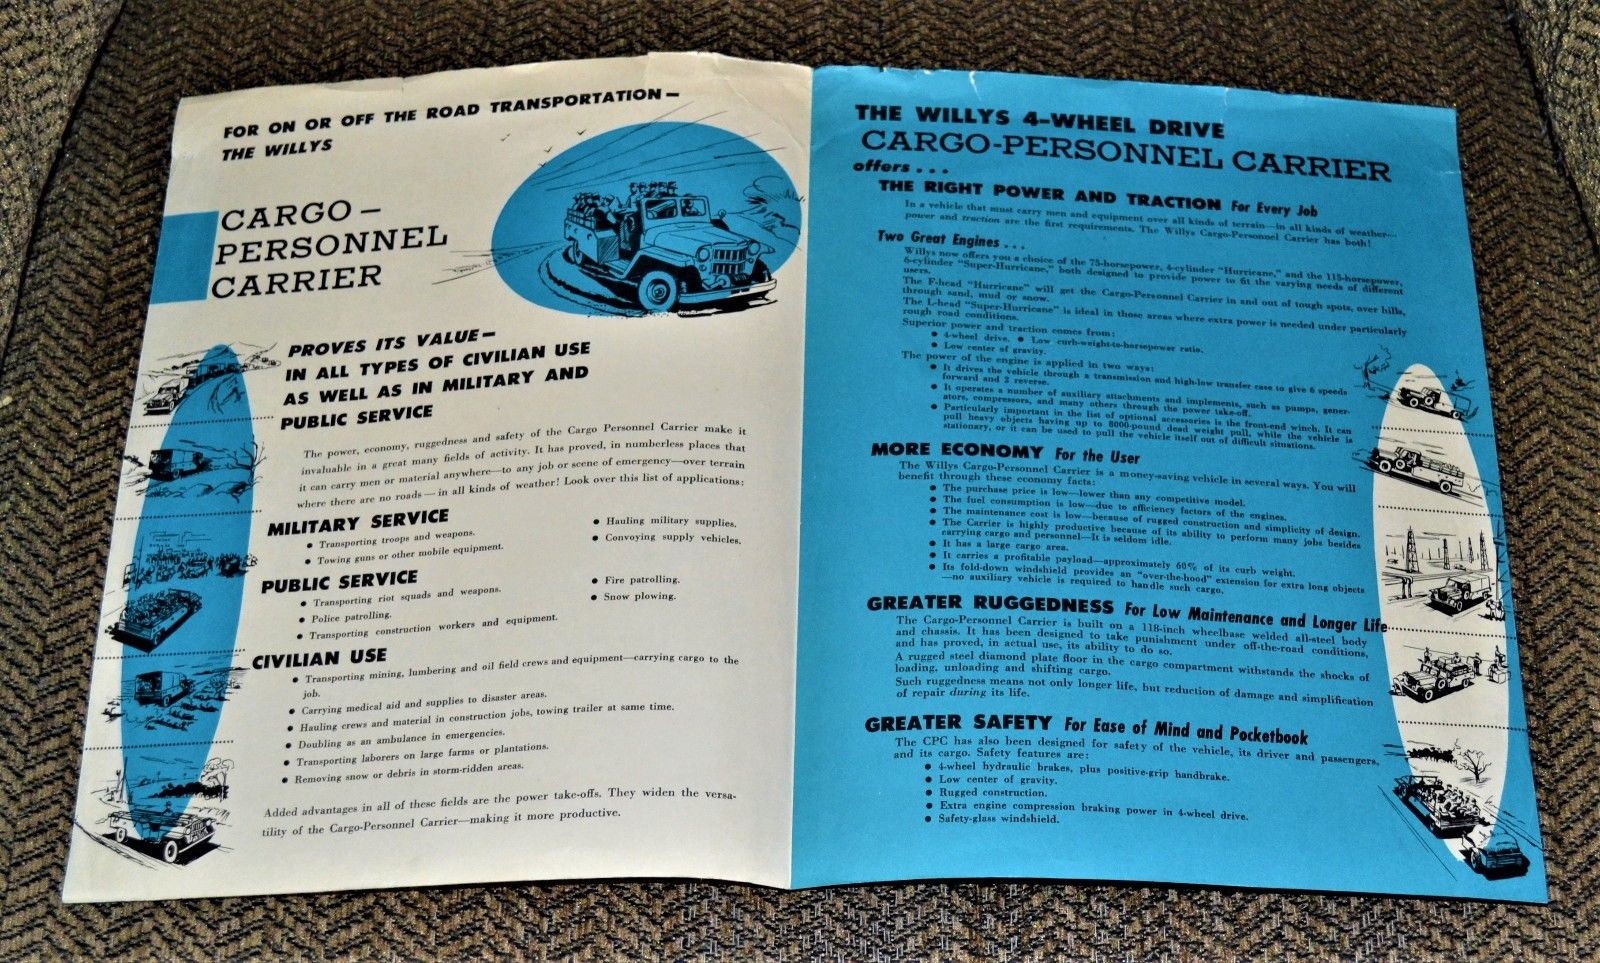 year-willys-cargo-personnel-carrier-brochure2